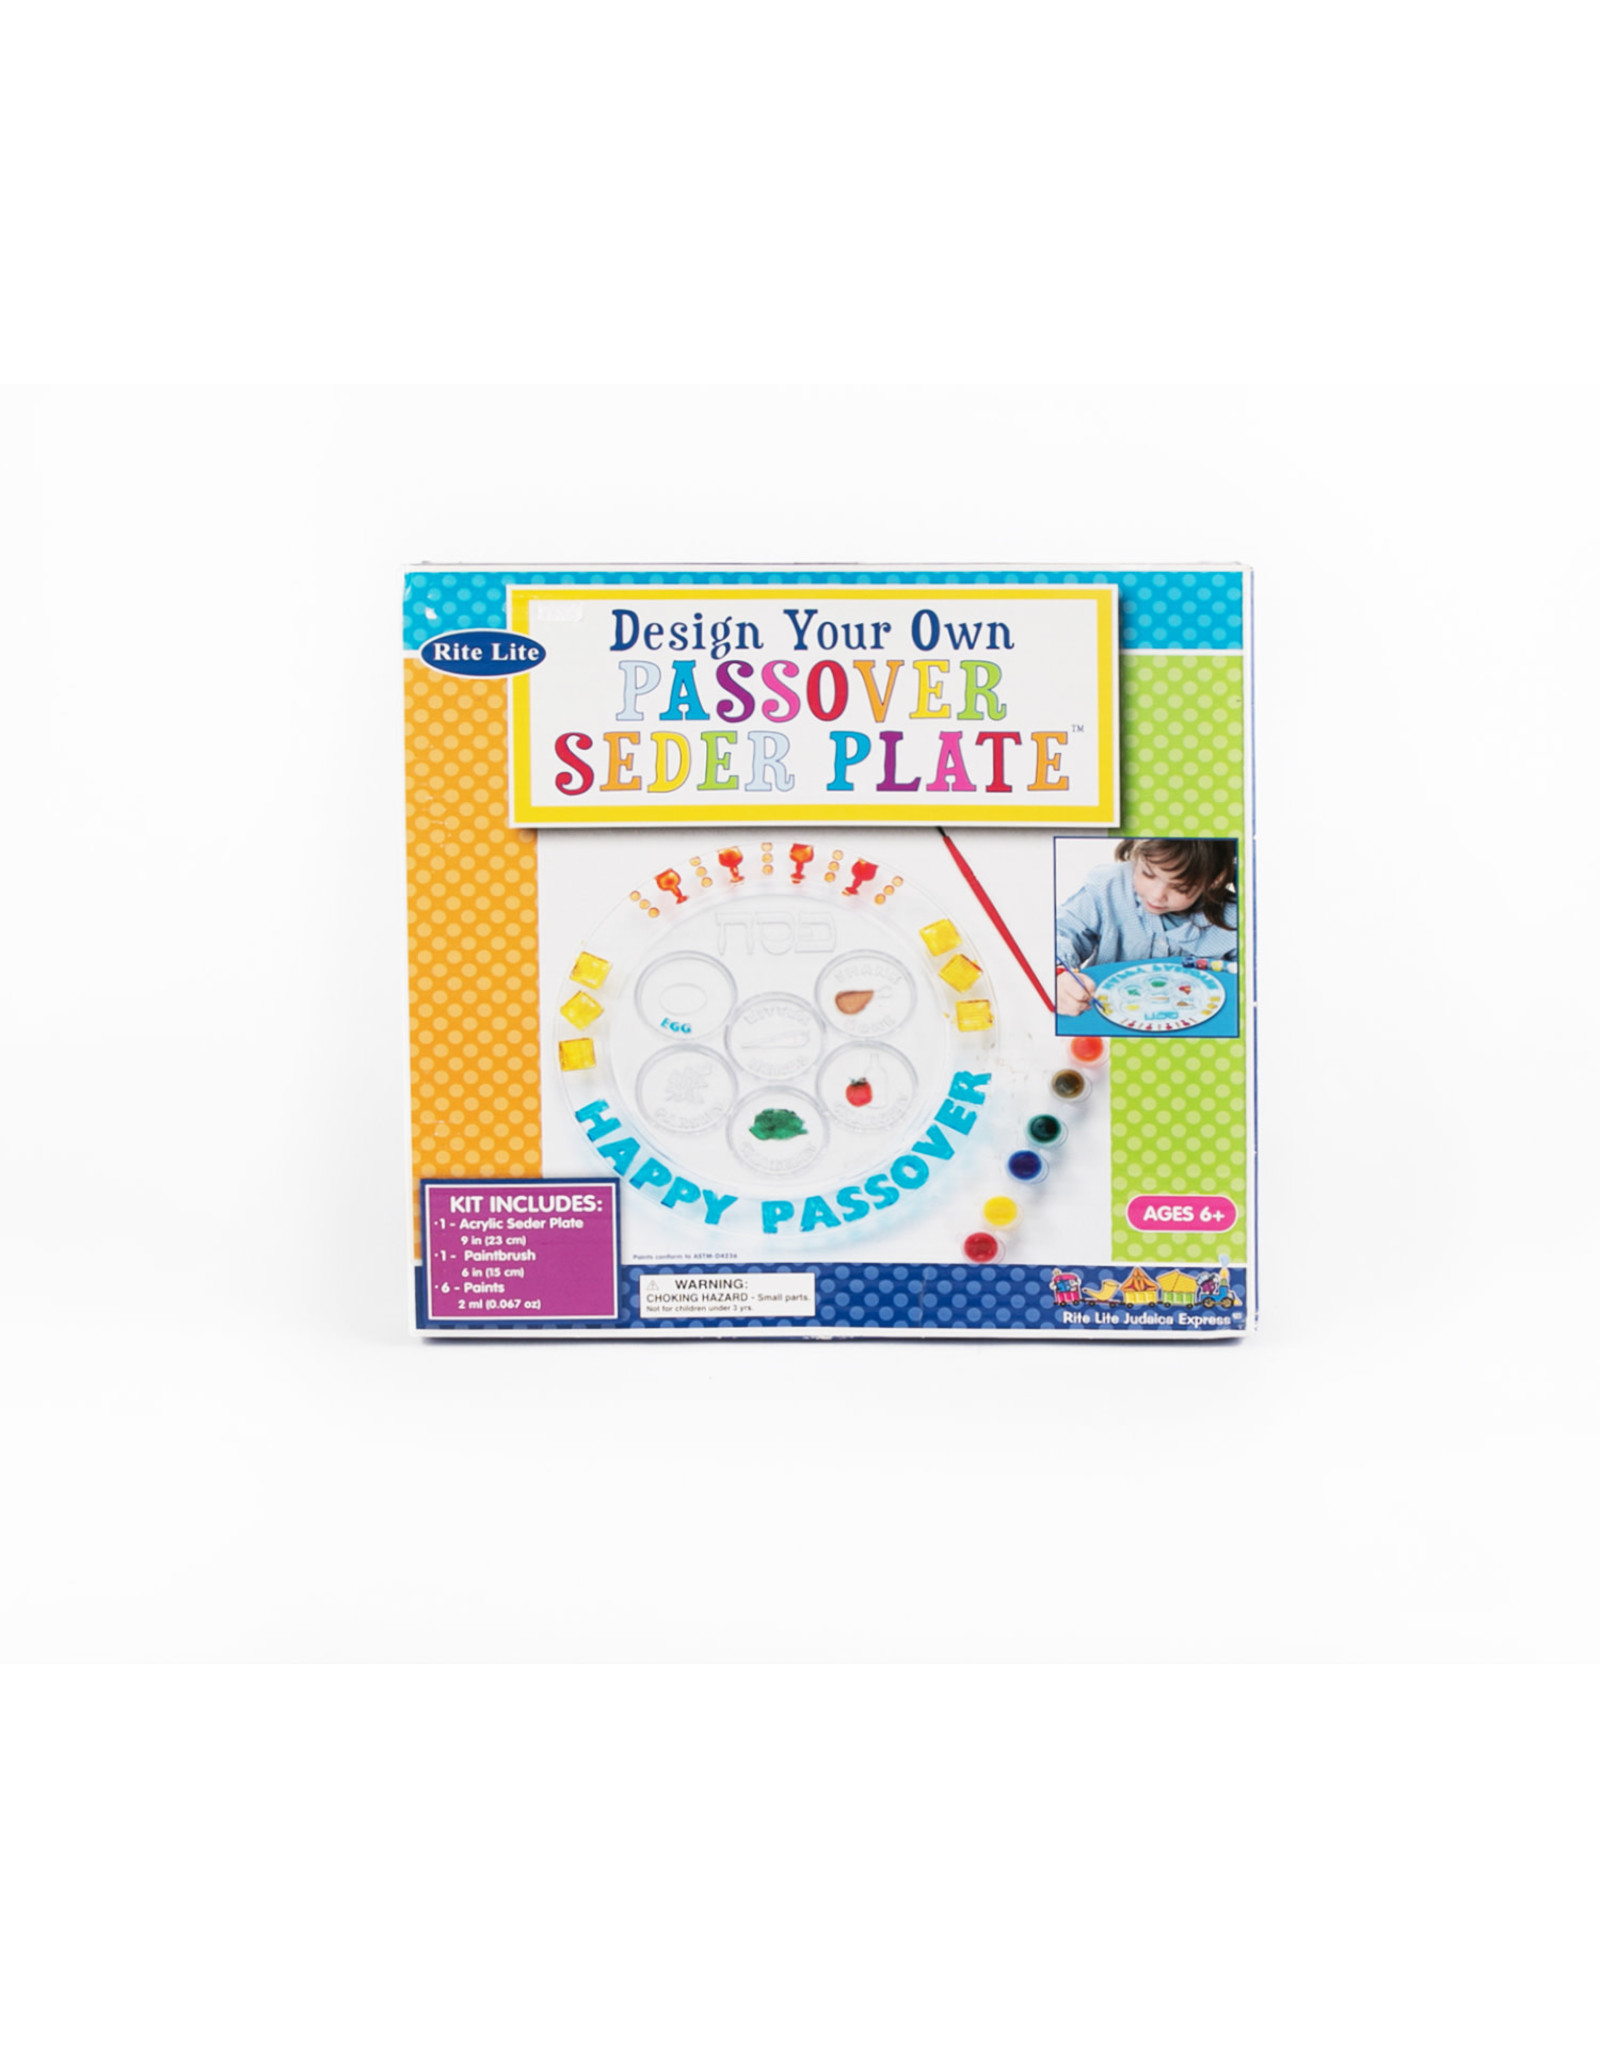 Seder plate, design your own